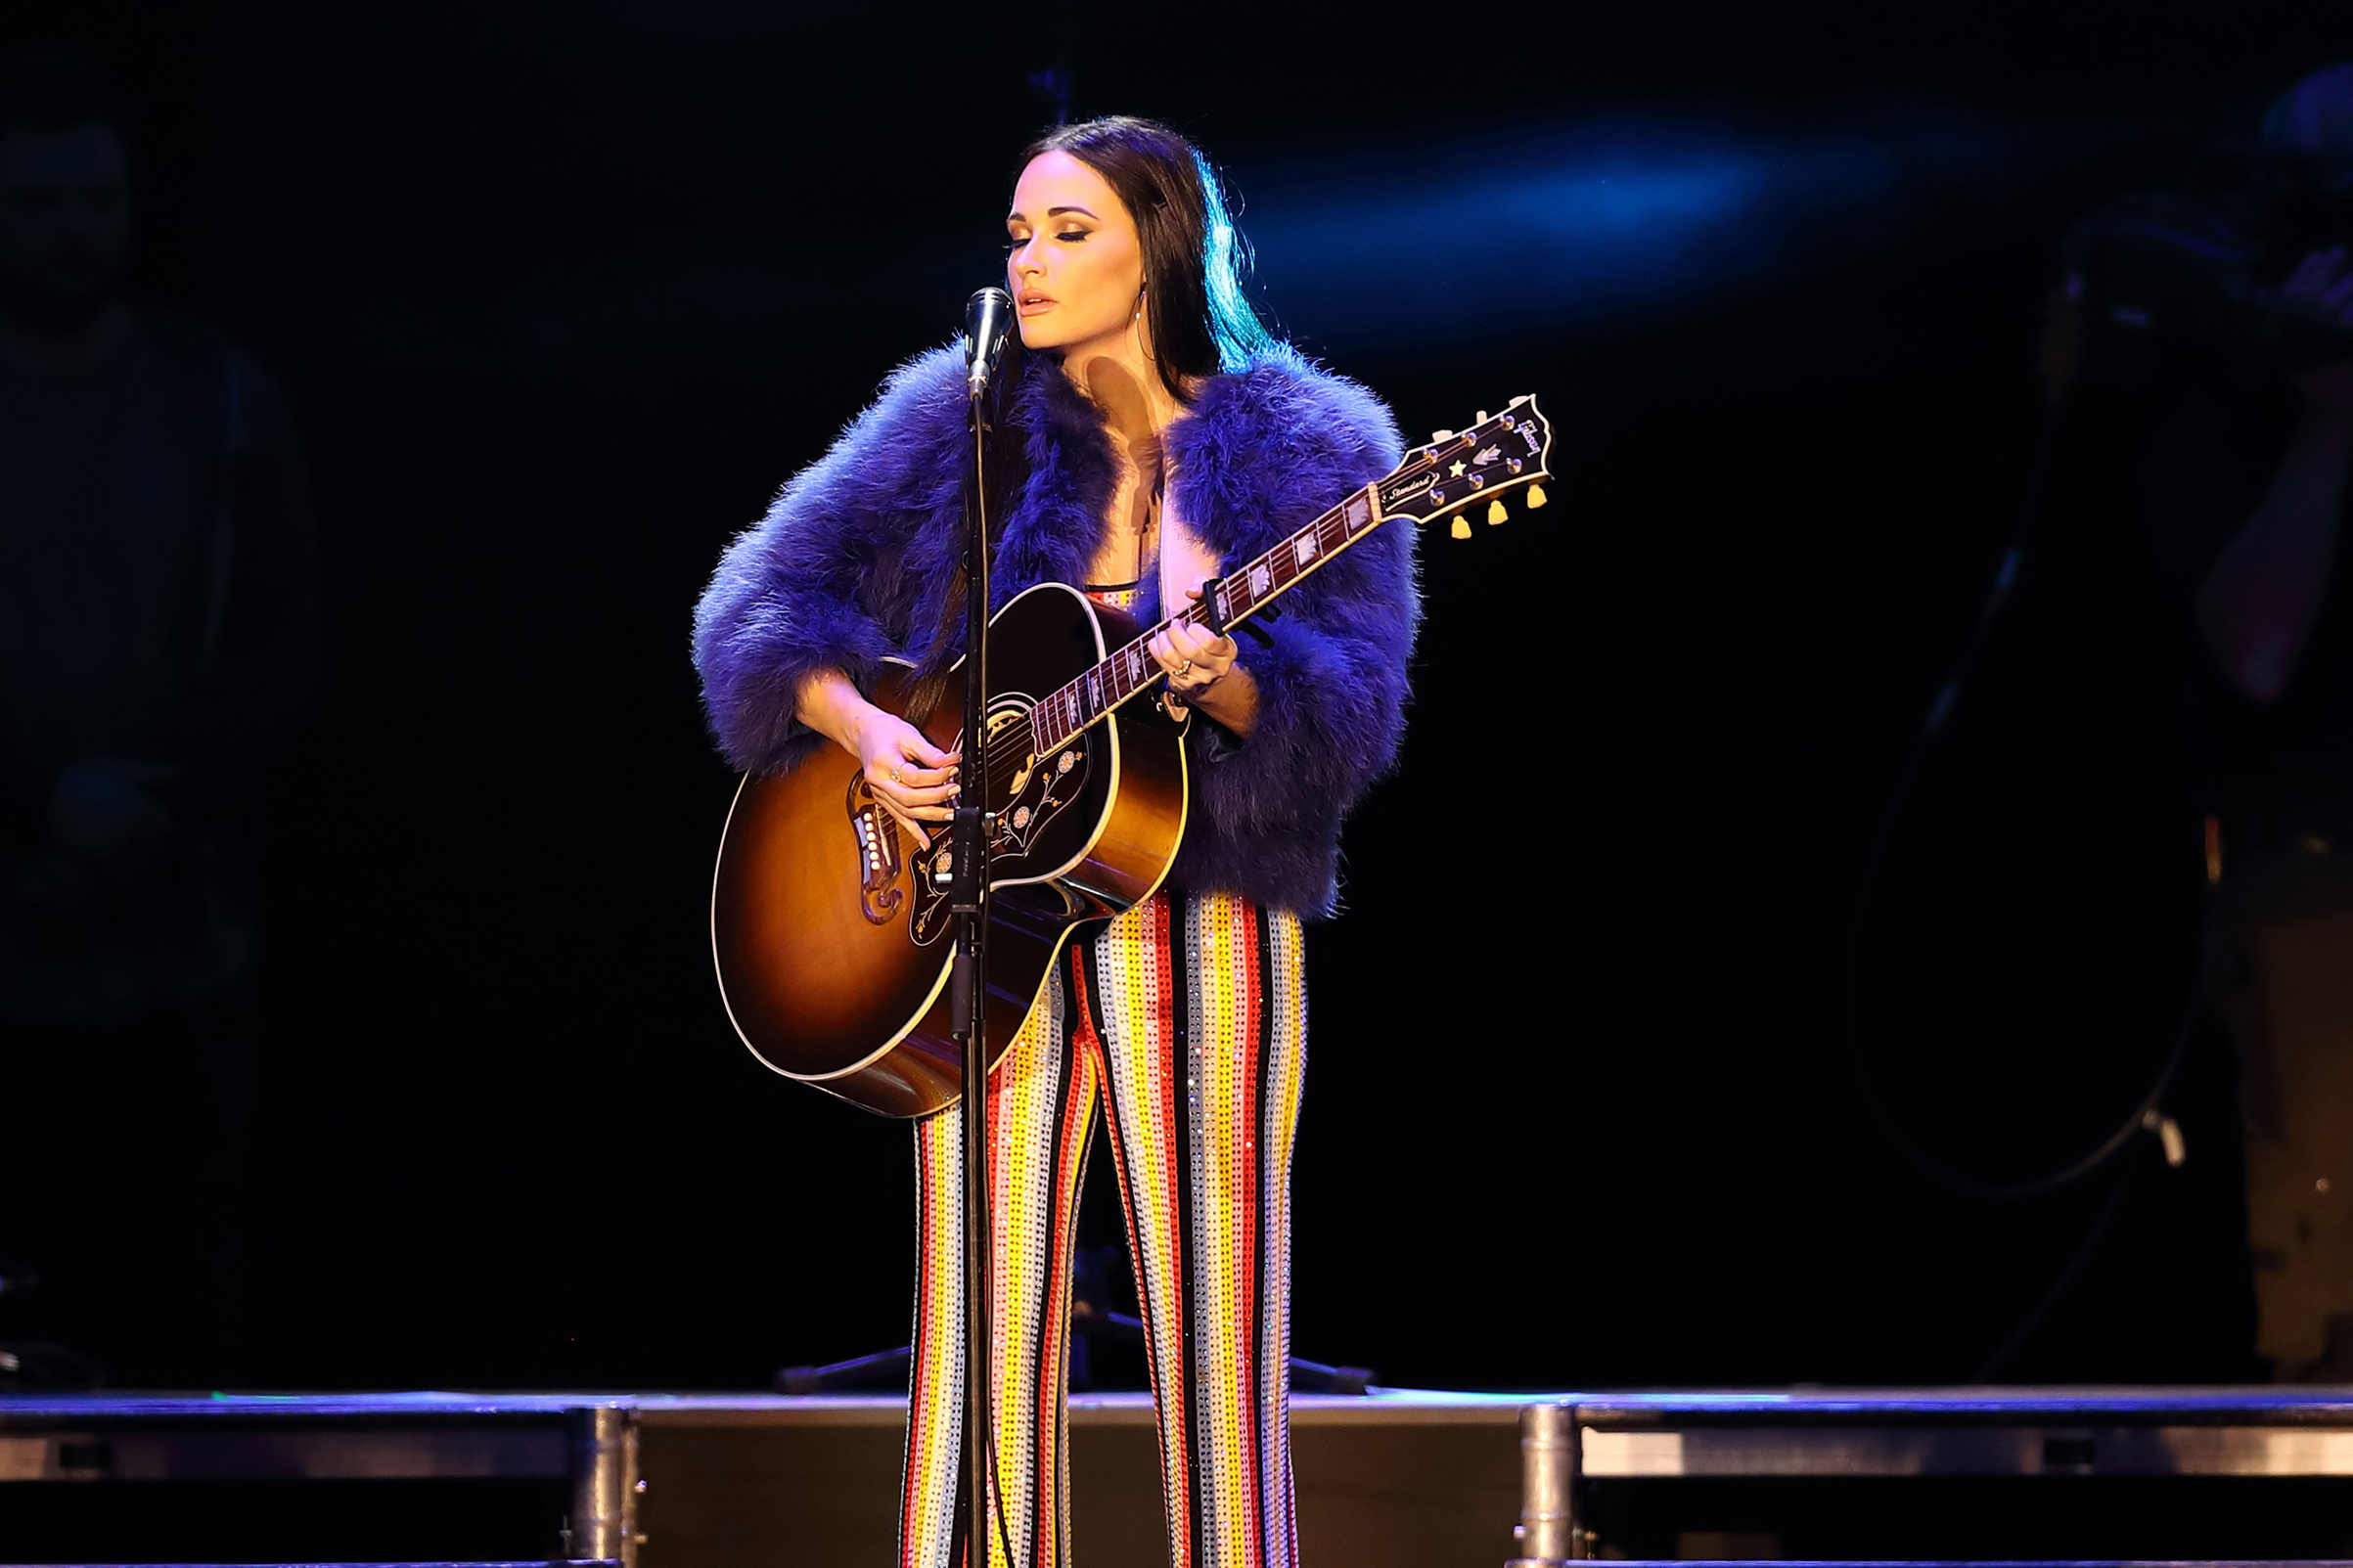 Kacey Musgraves: more than a girl with a guitar